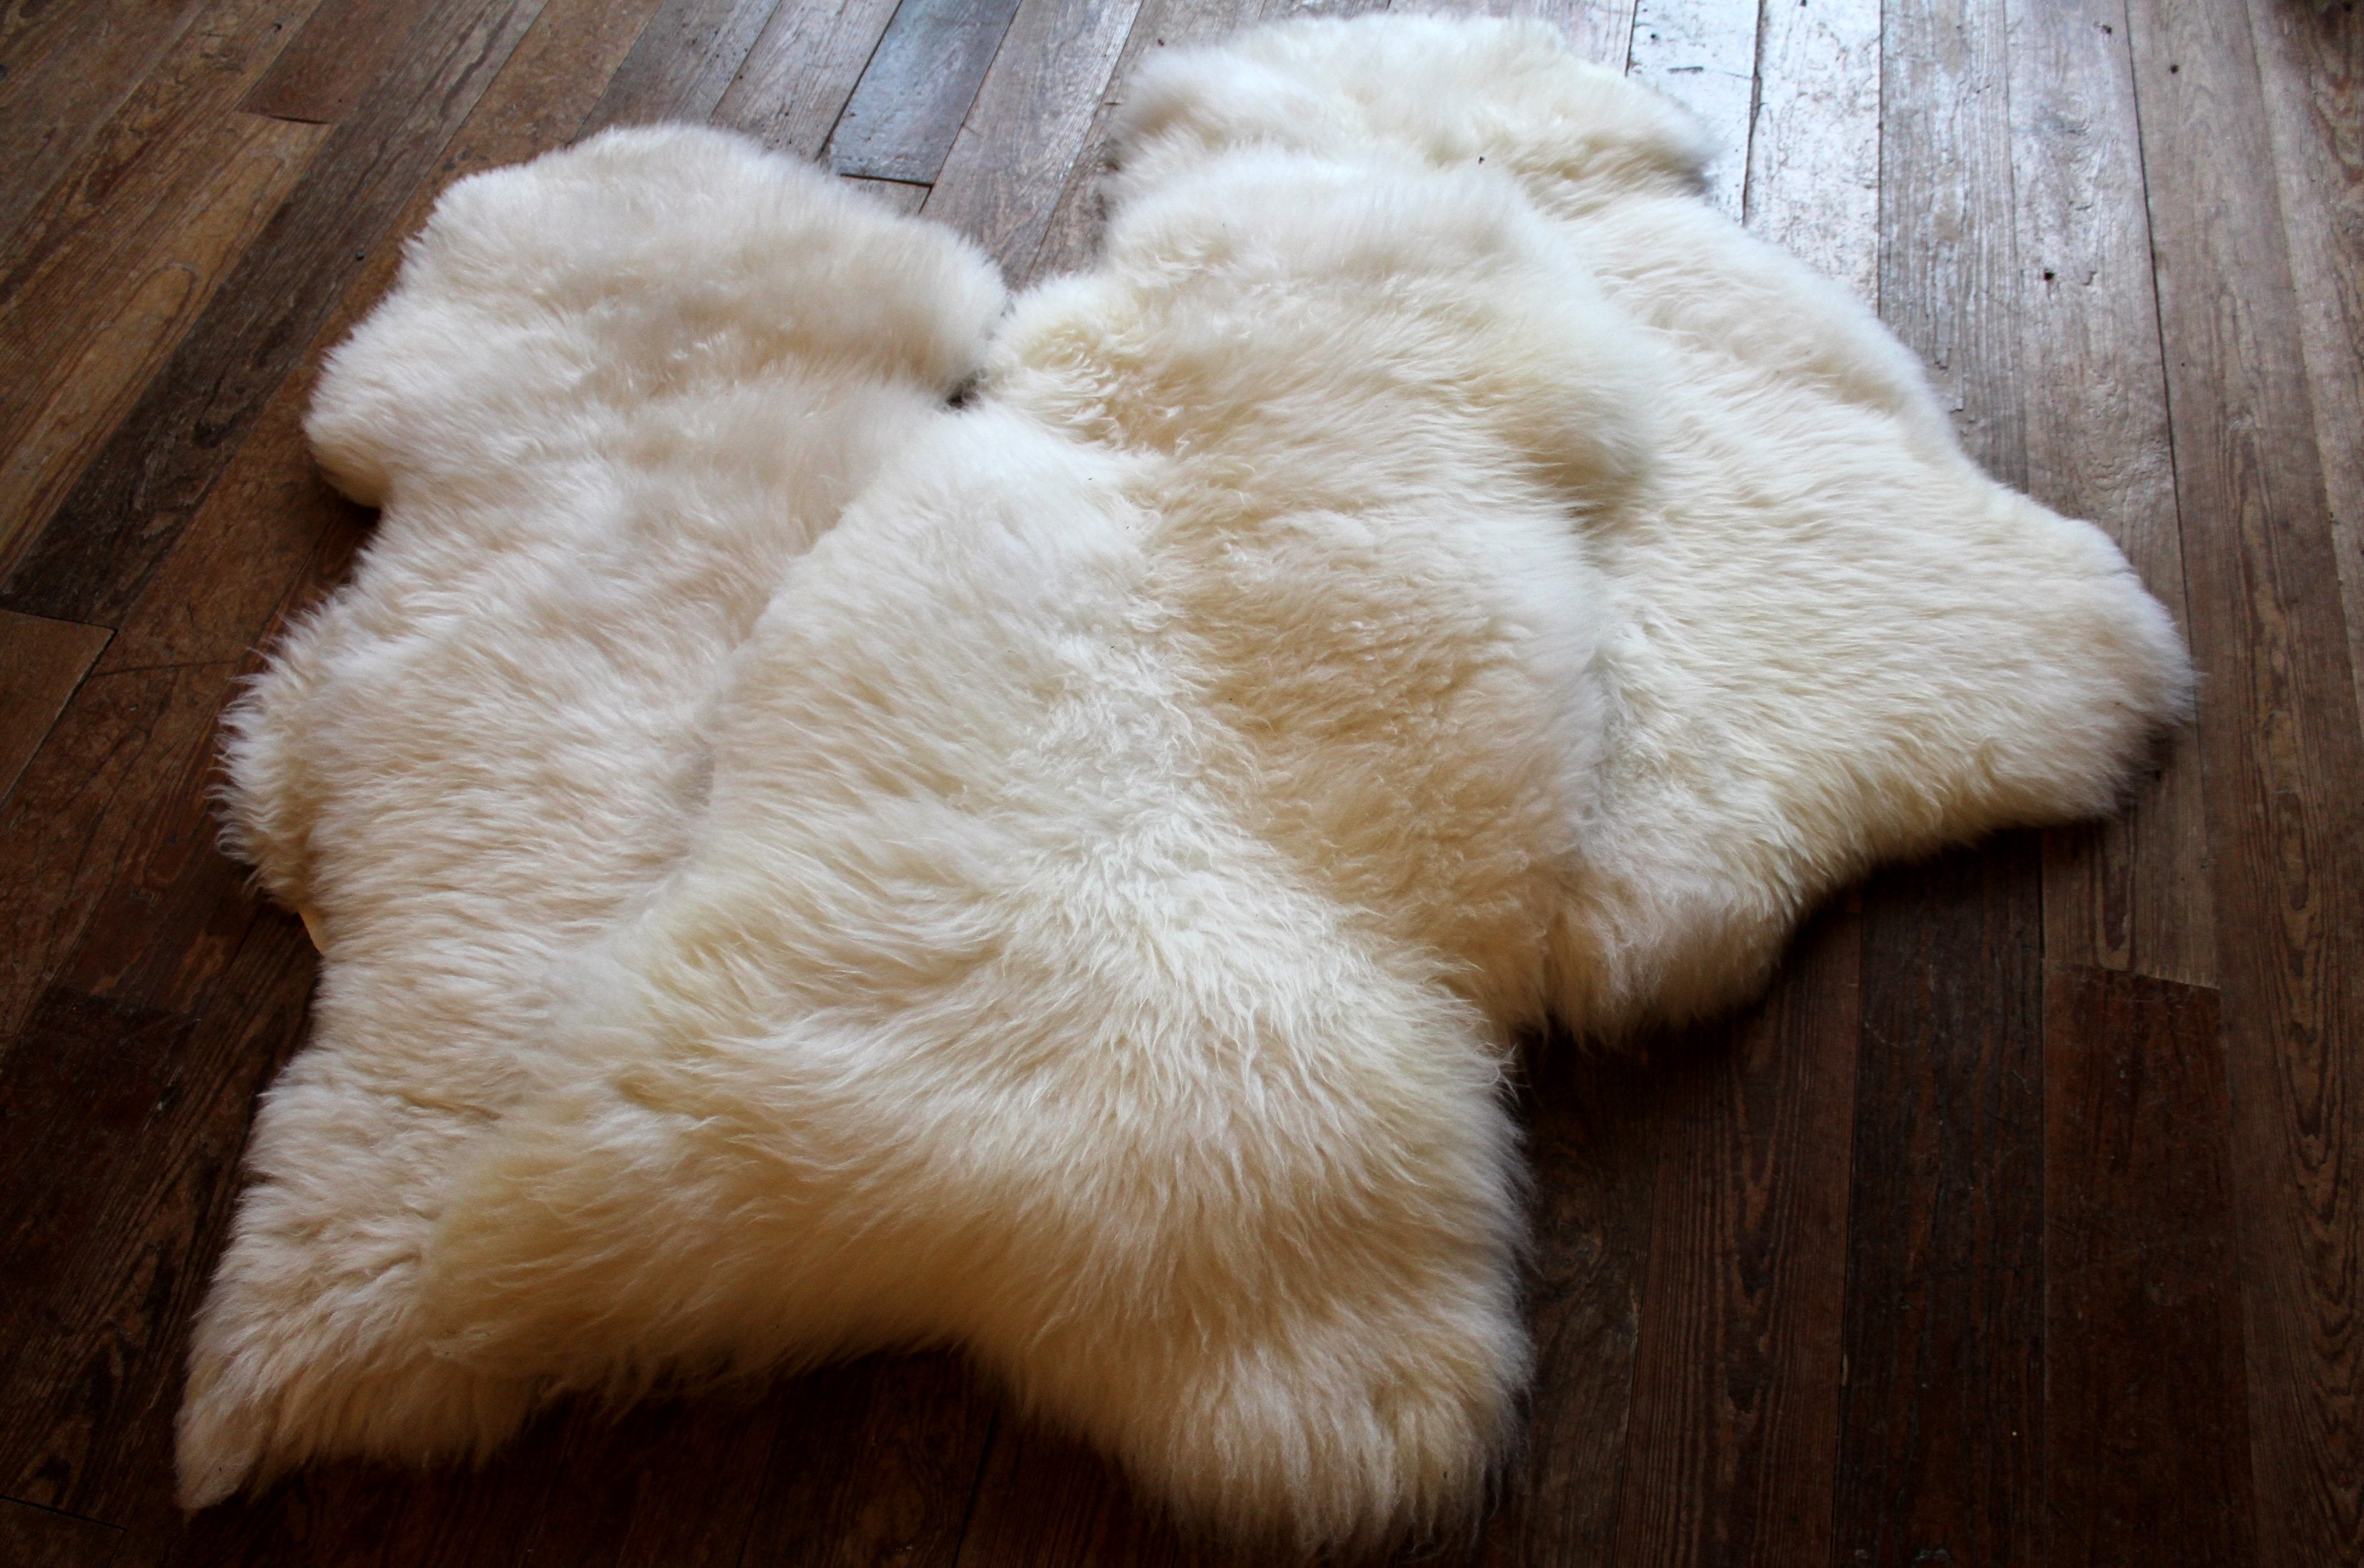 Three sheep skin rugs piled on a wooden floor